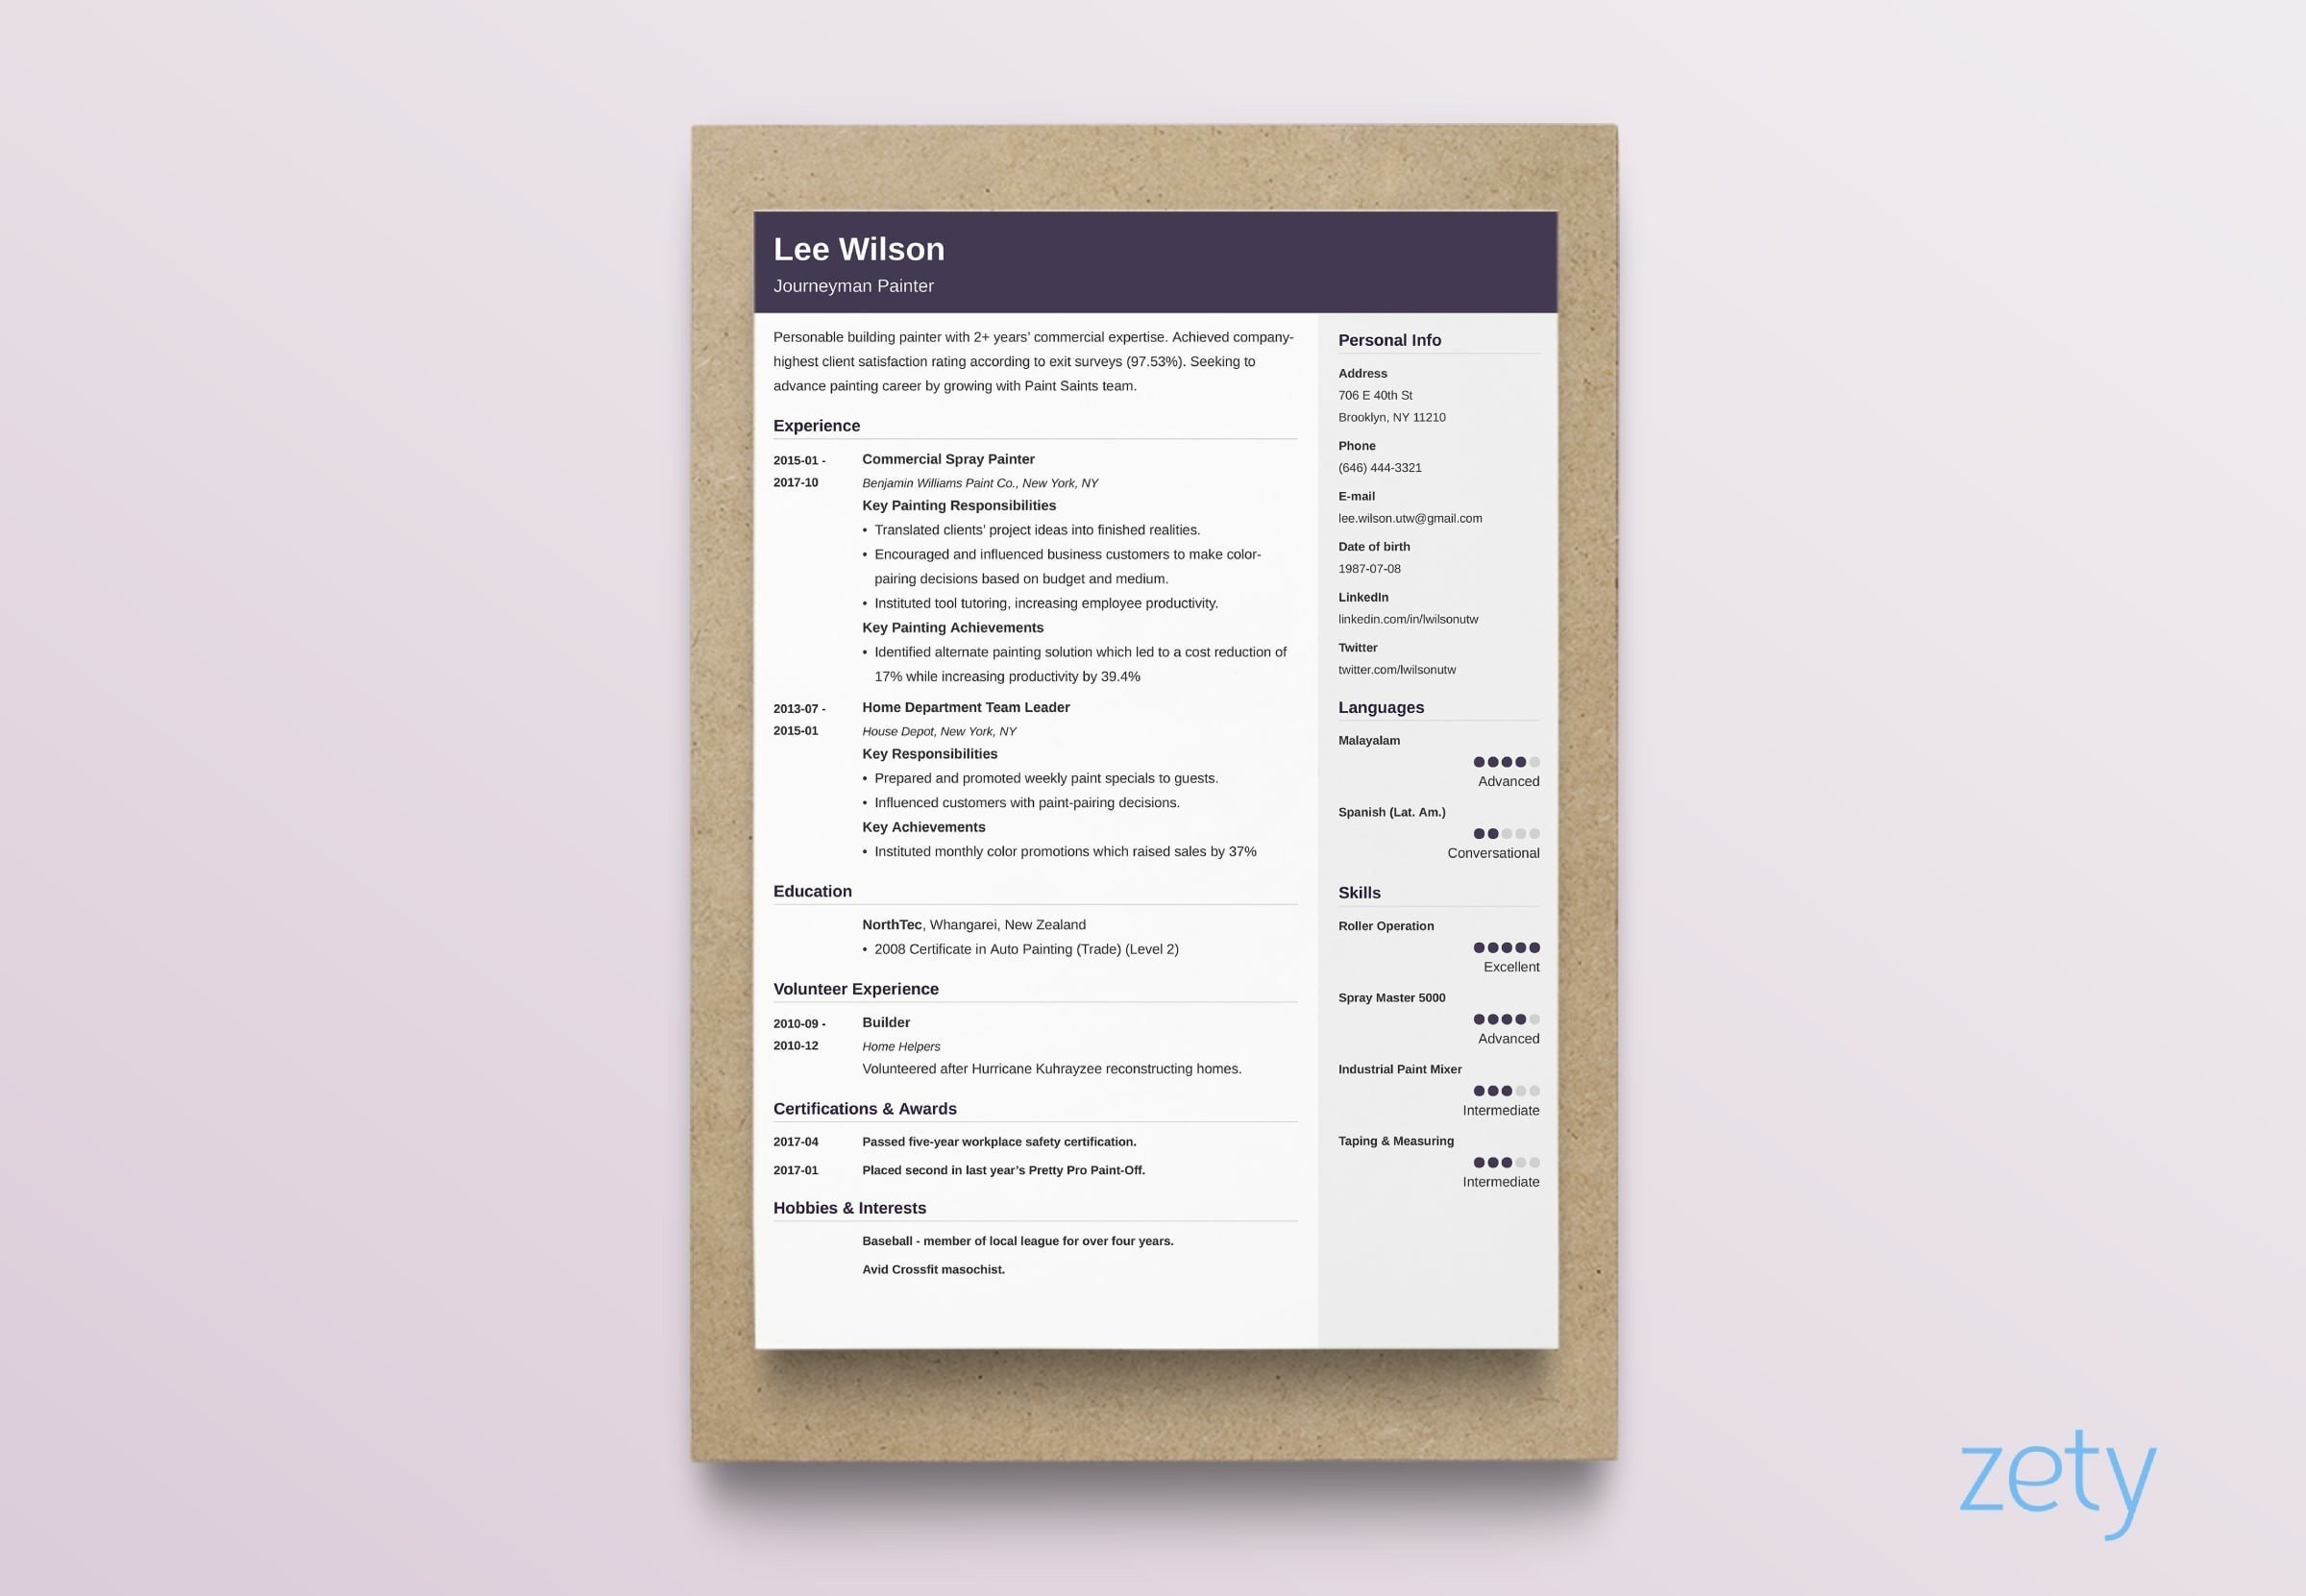 CV Format: The Best Structure for a Curriculum Vitae [30+ Examples]